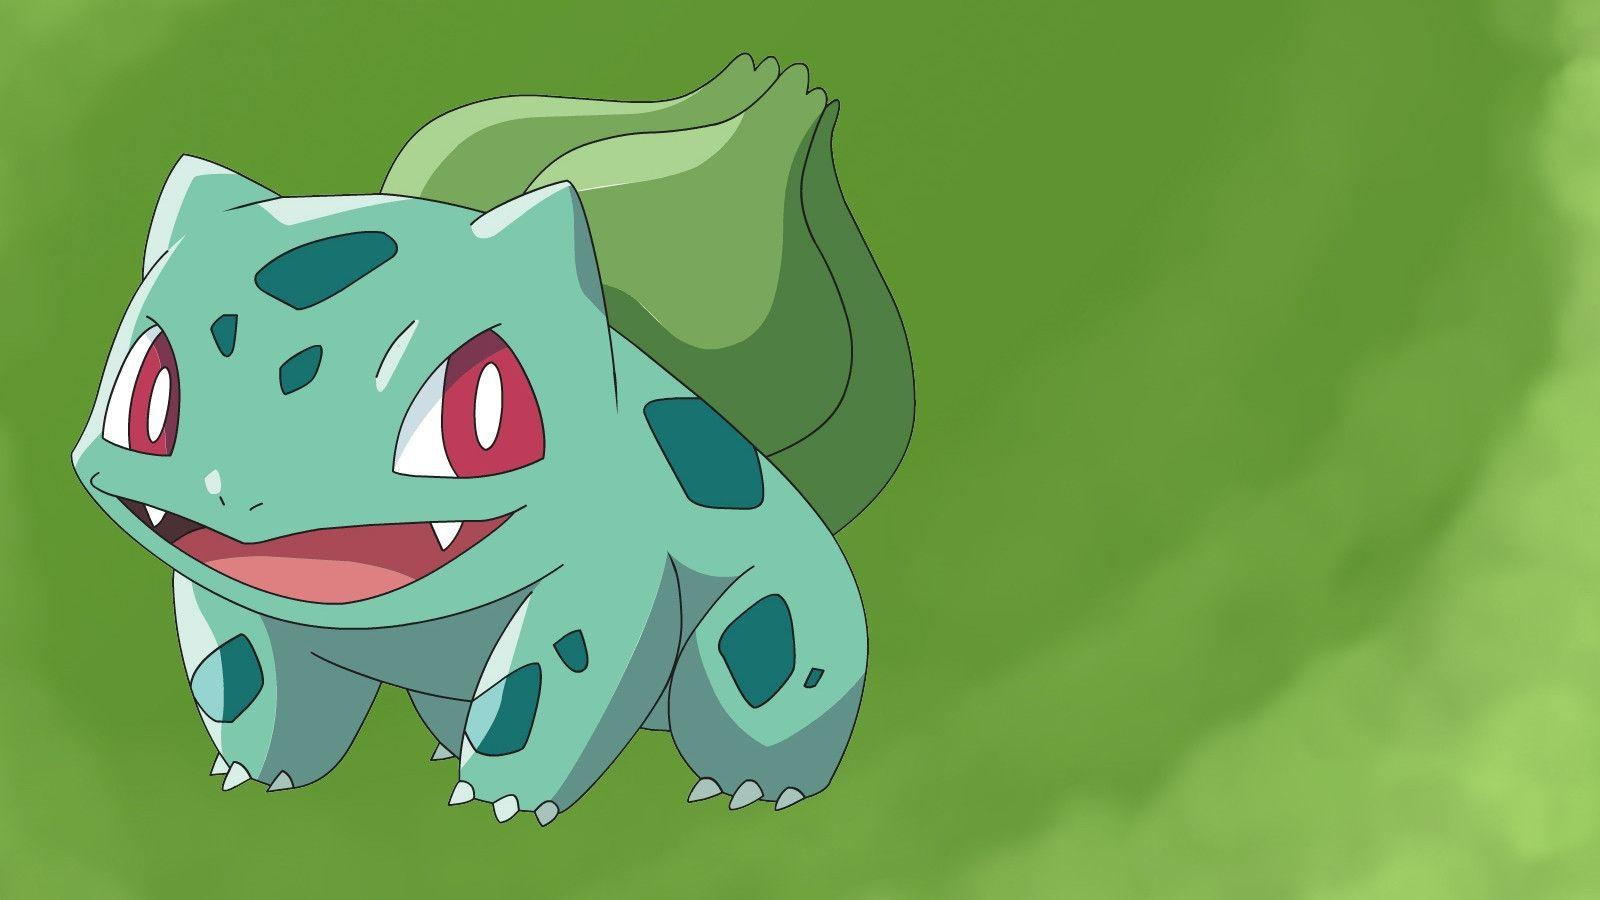 bulbasaur evolution wallpaper images - photo #37